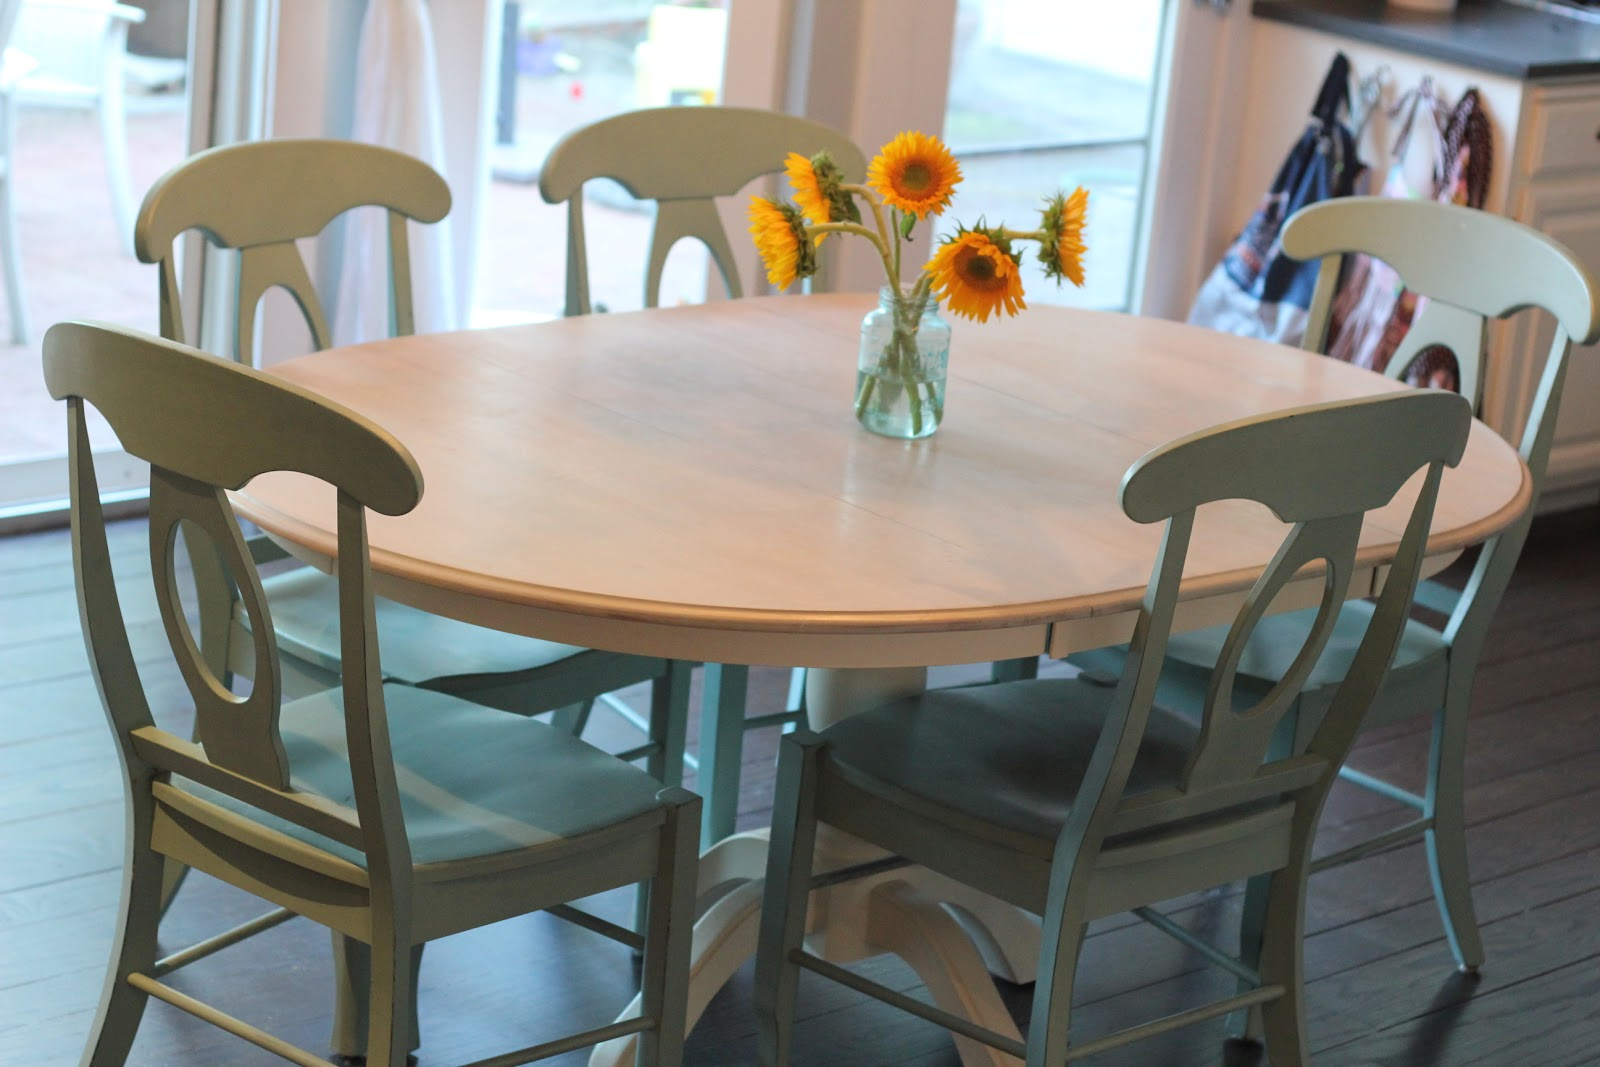 My greenbrae cottage dining table refinish with annie sloan - Refinishing a kitchen table ...